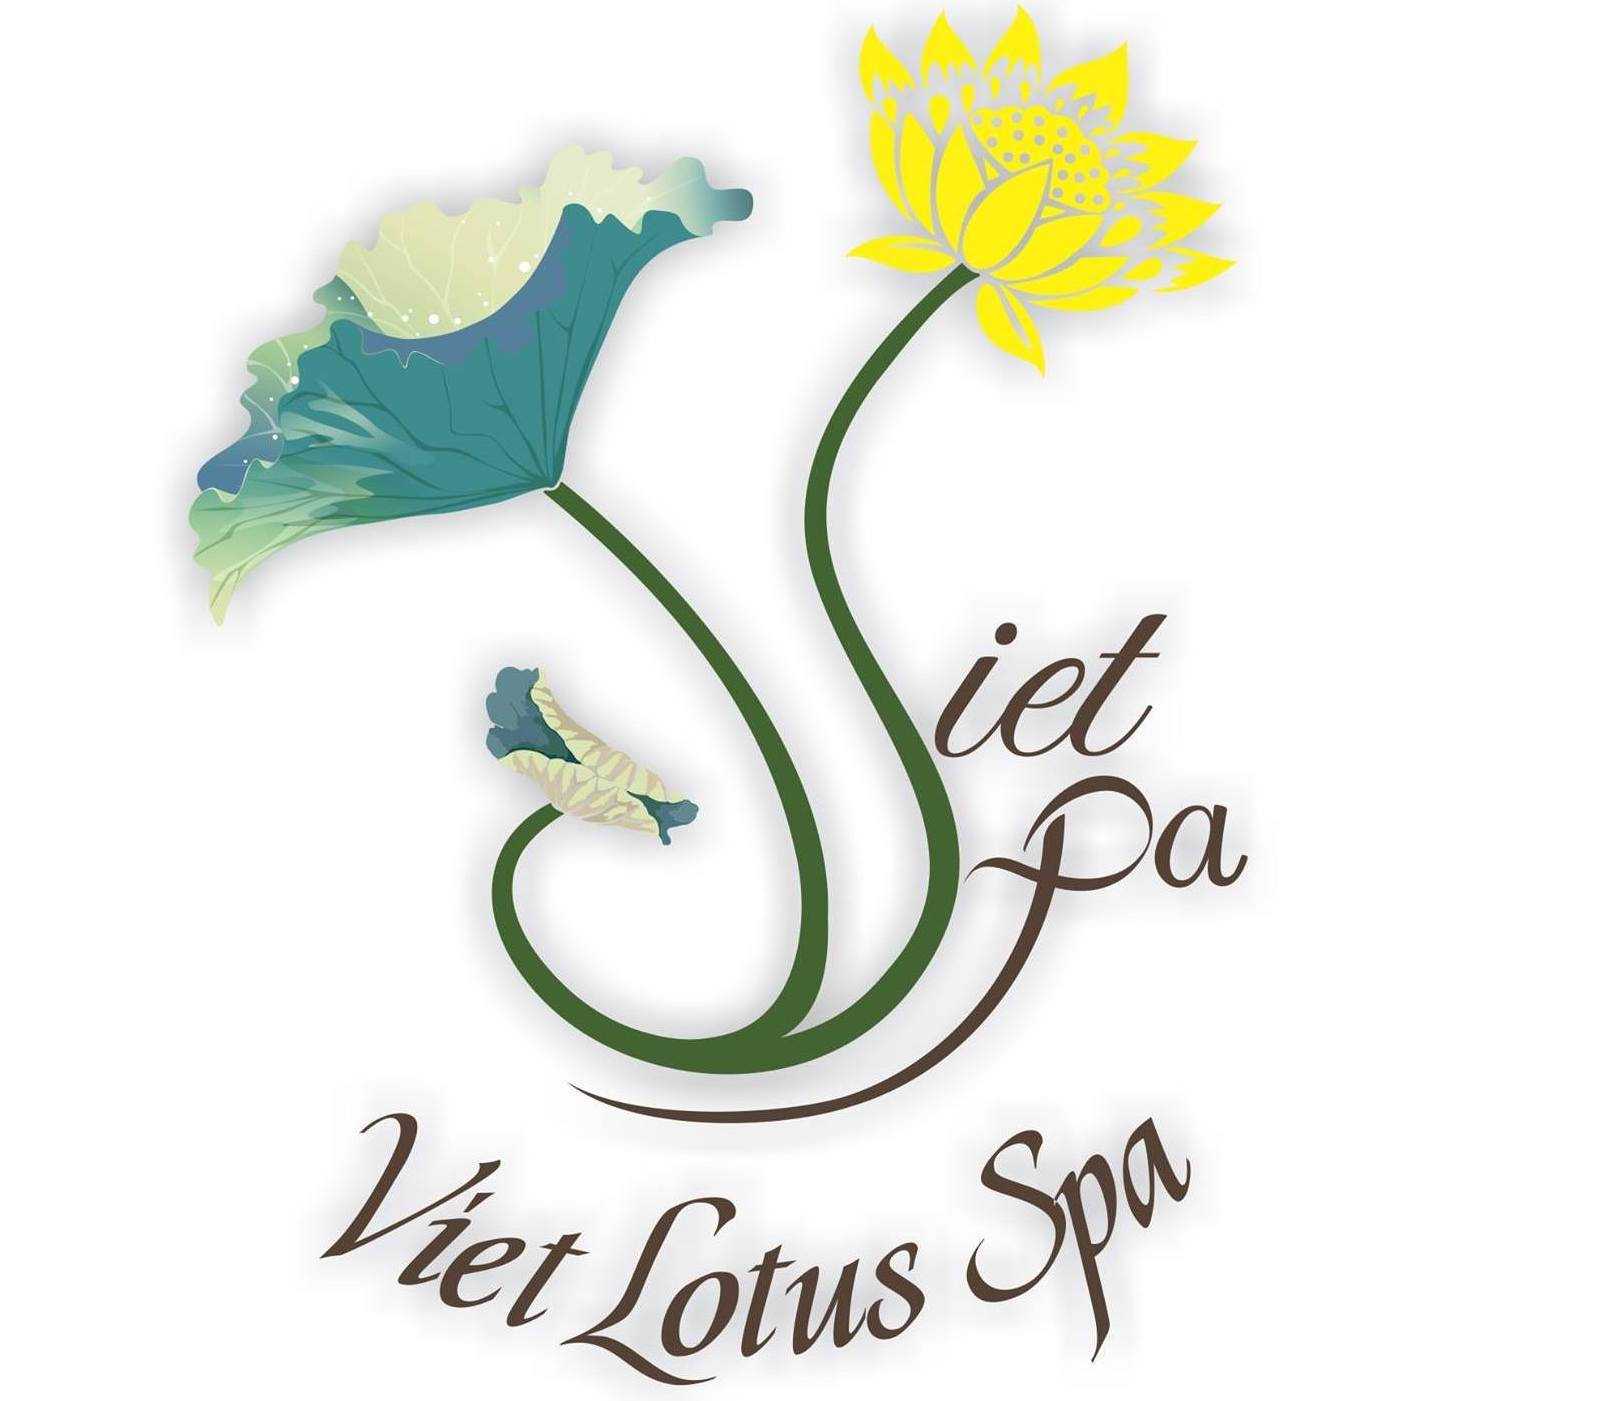 25.Viet Lotus Spa